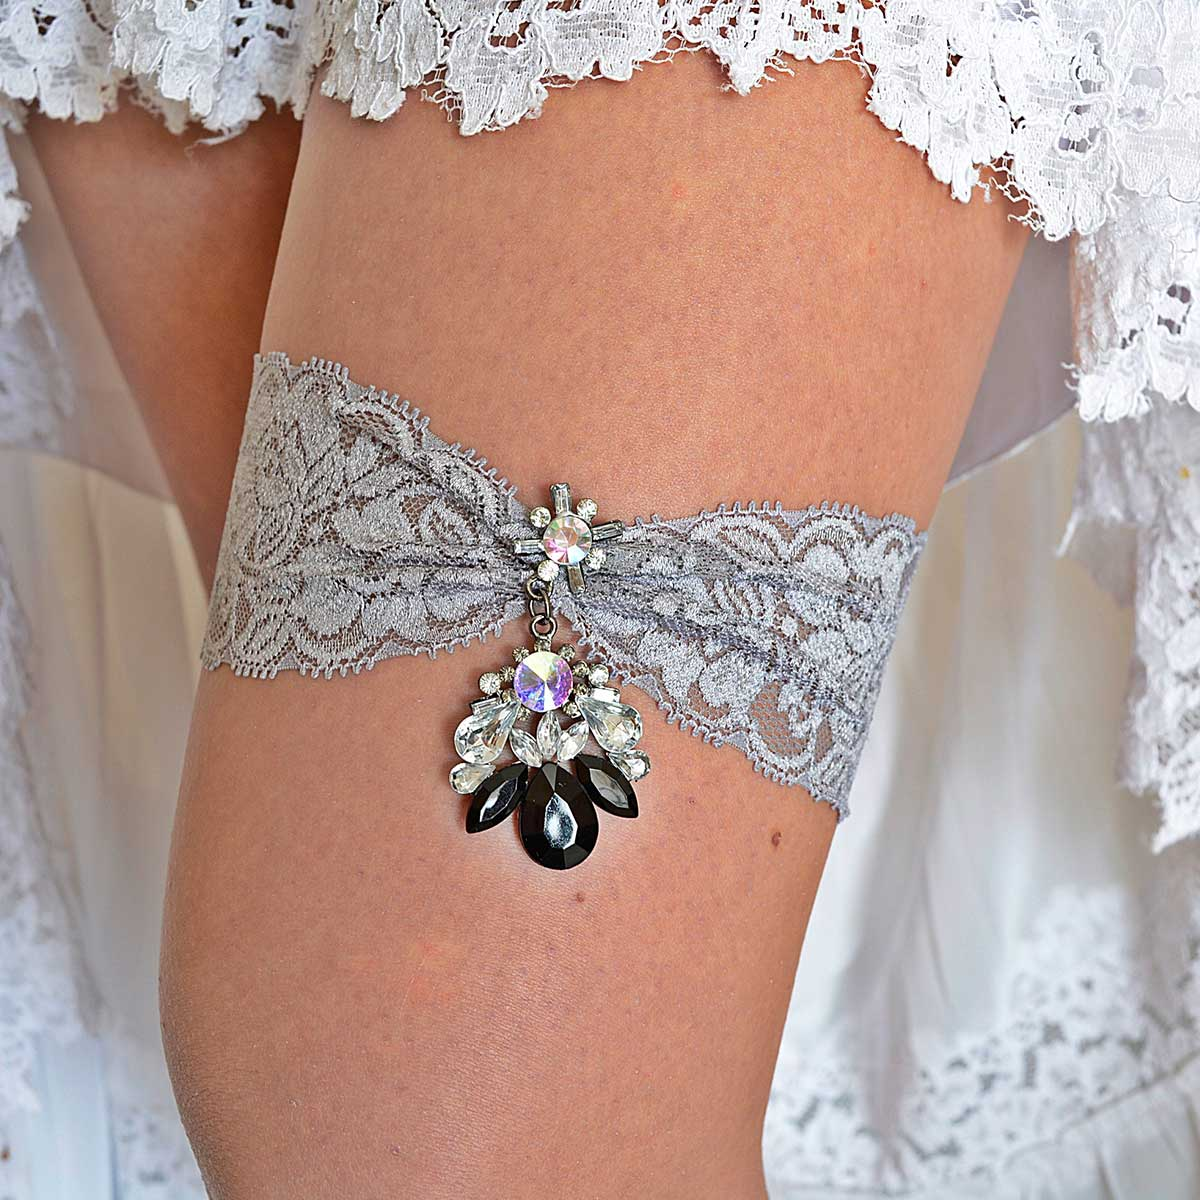 Gray Bridal Garter Set With Black & Clear Rhinestone - Wedding Garter - SuzannaM Designs